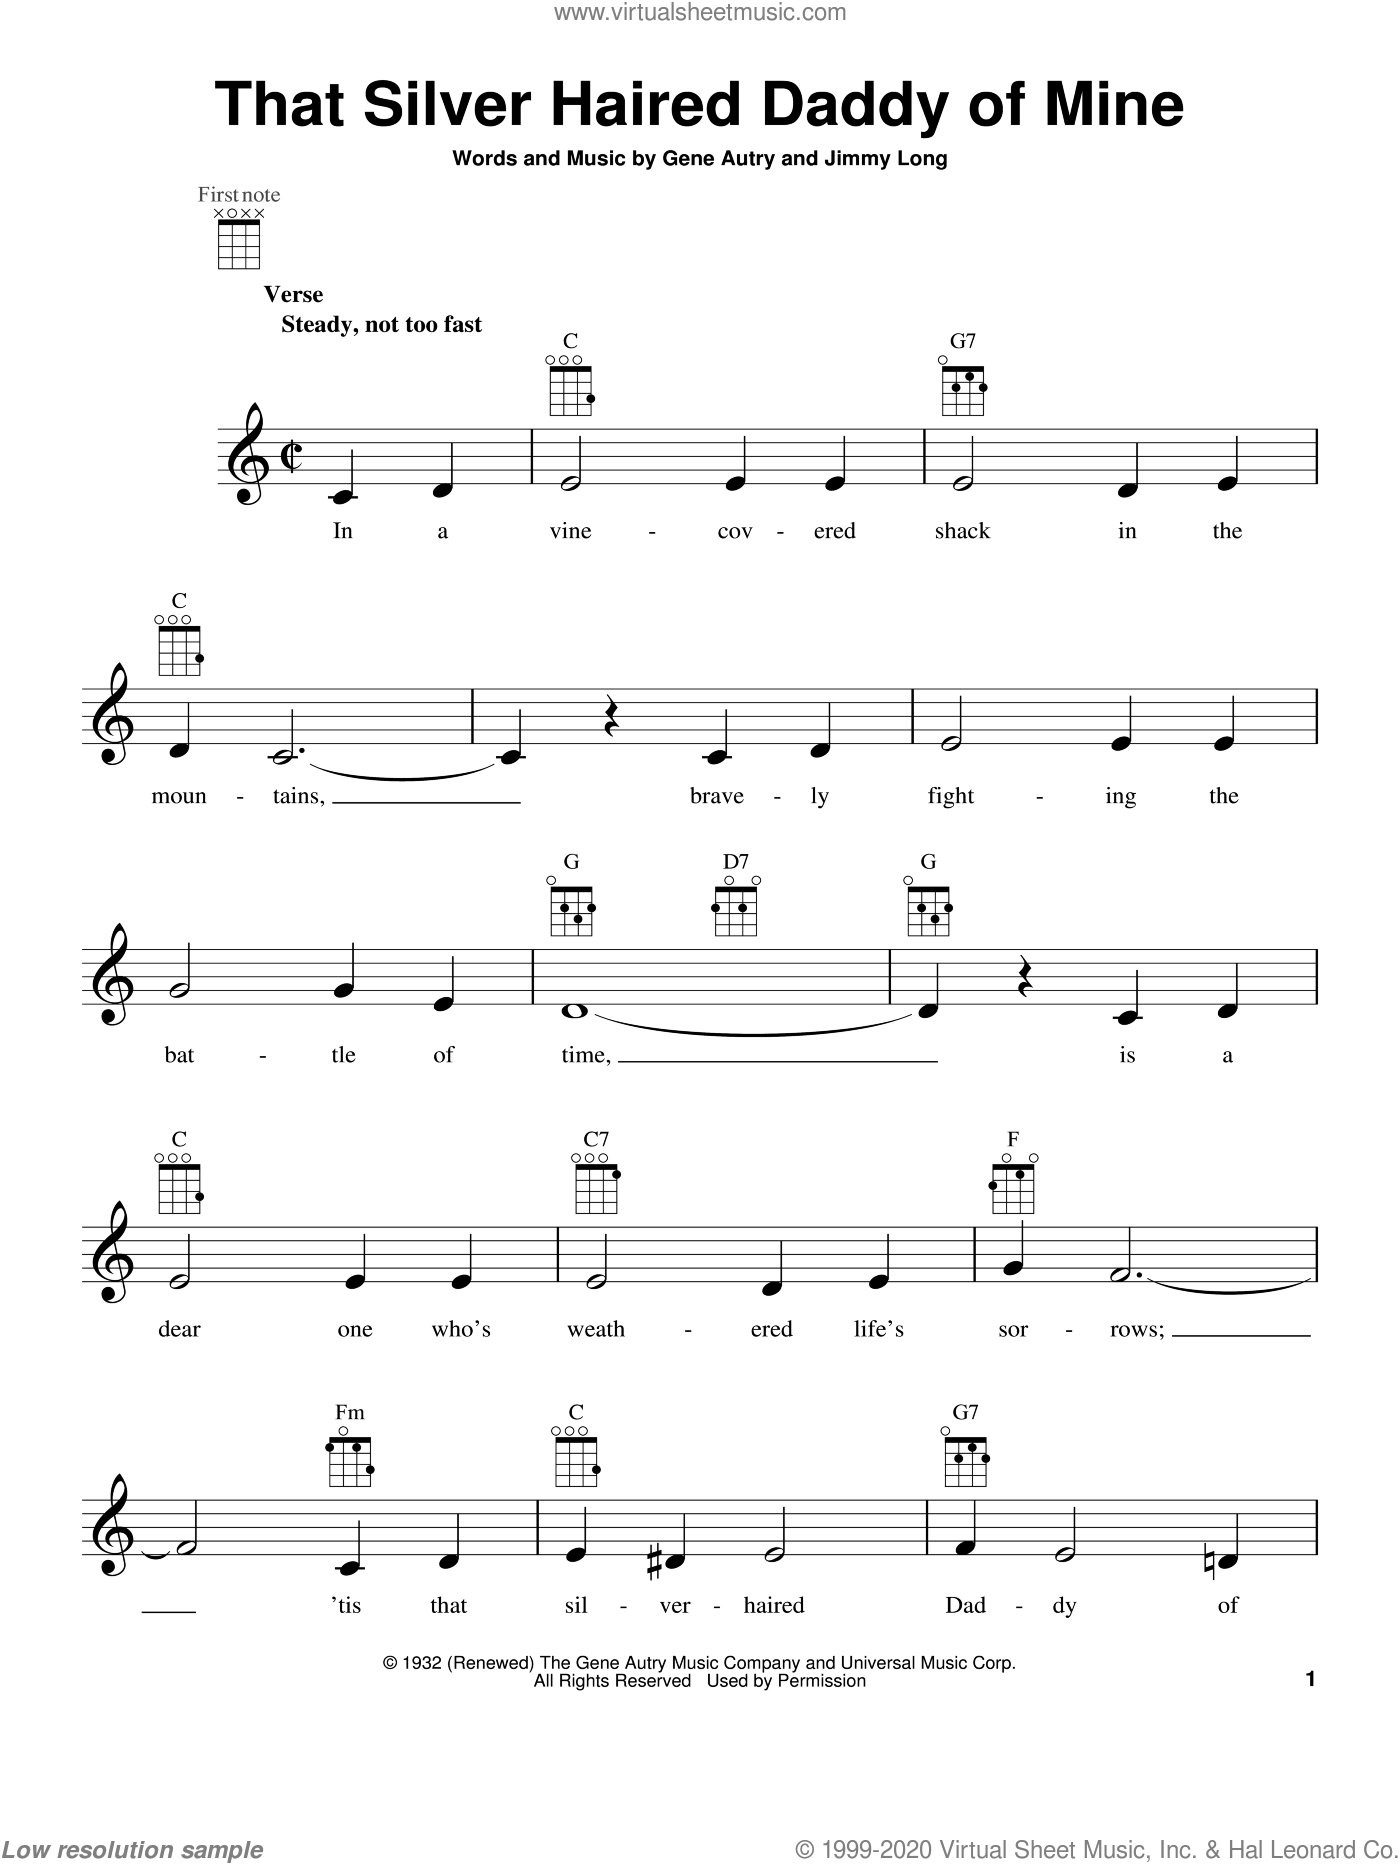 That Silver Haired Daddy Of Mine sheet music for ukulele by Jimmy Long